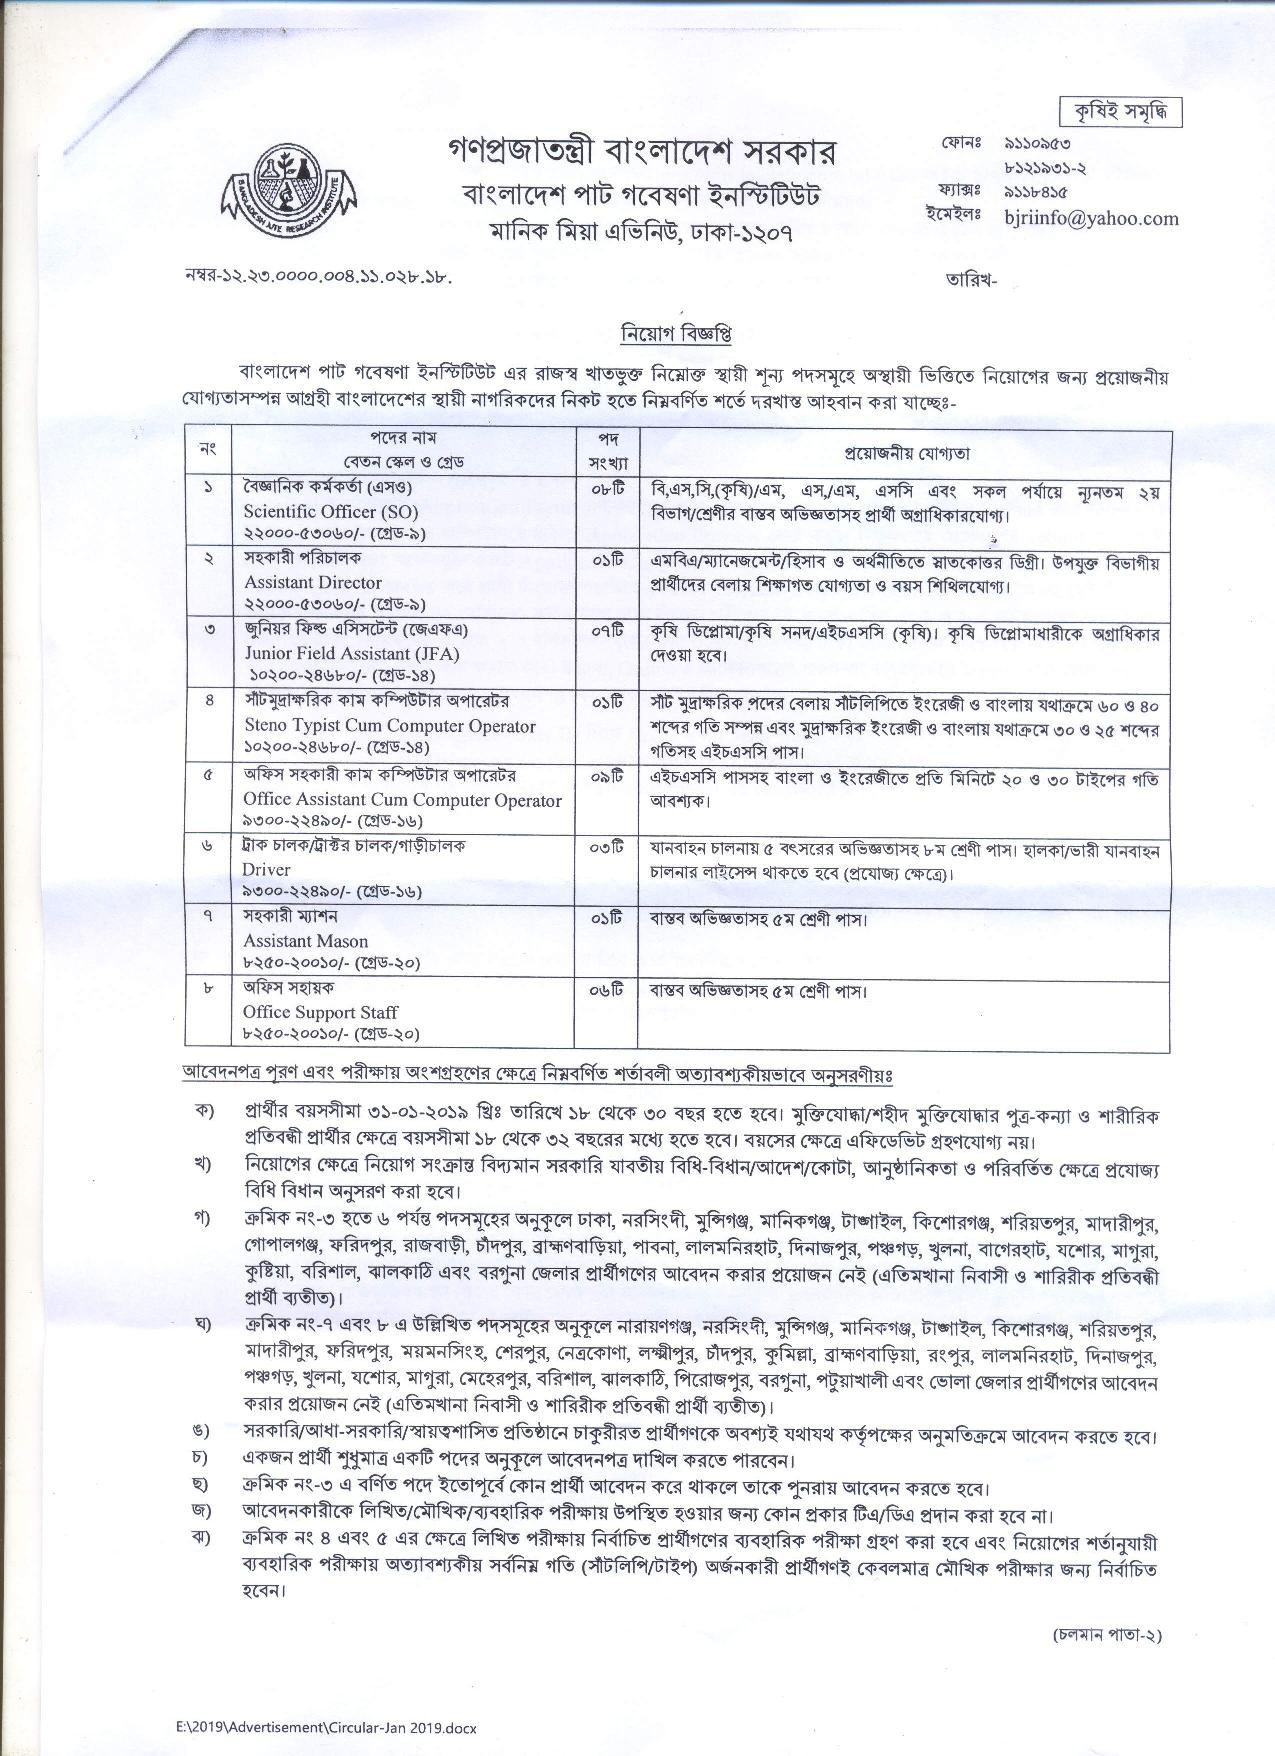 Bangladesh Jute Research Institute BJRI Job Circular 2019